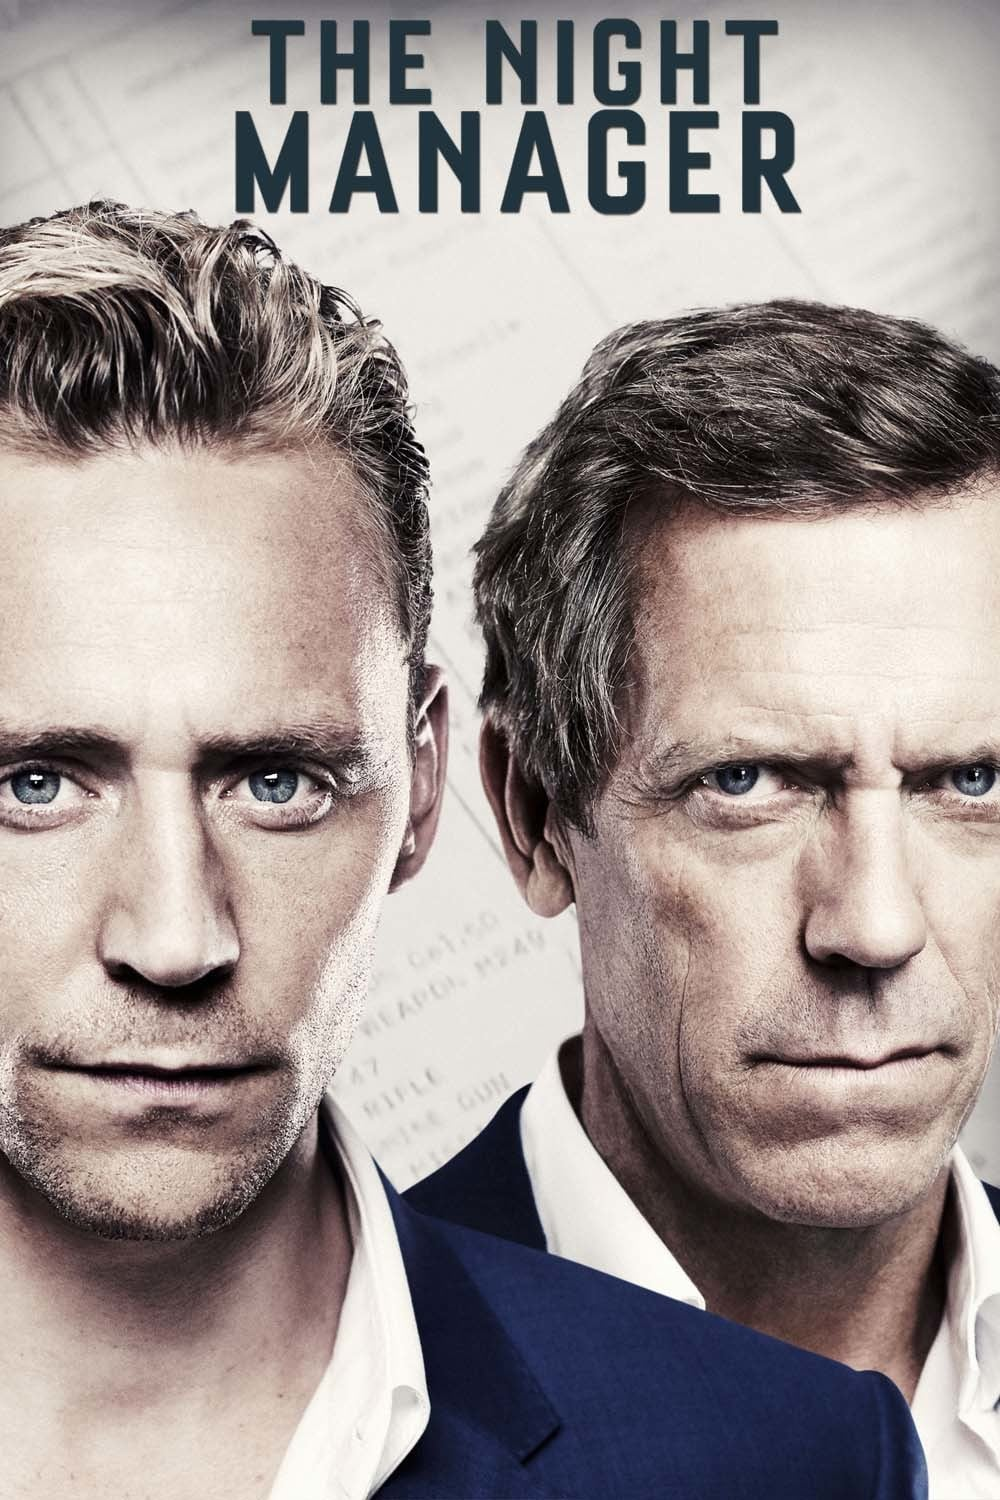 The Night Manager rating